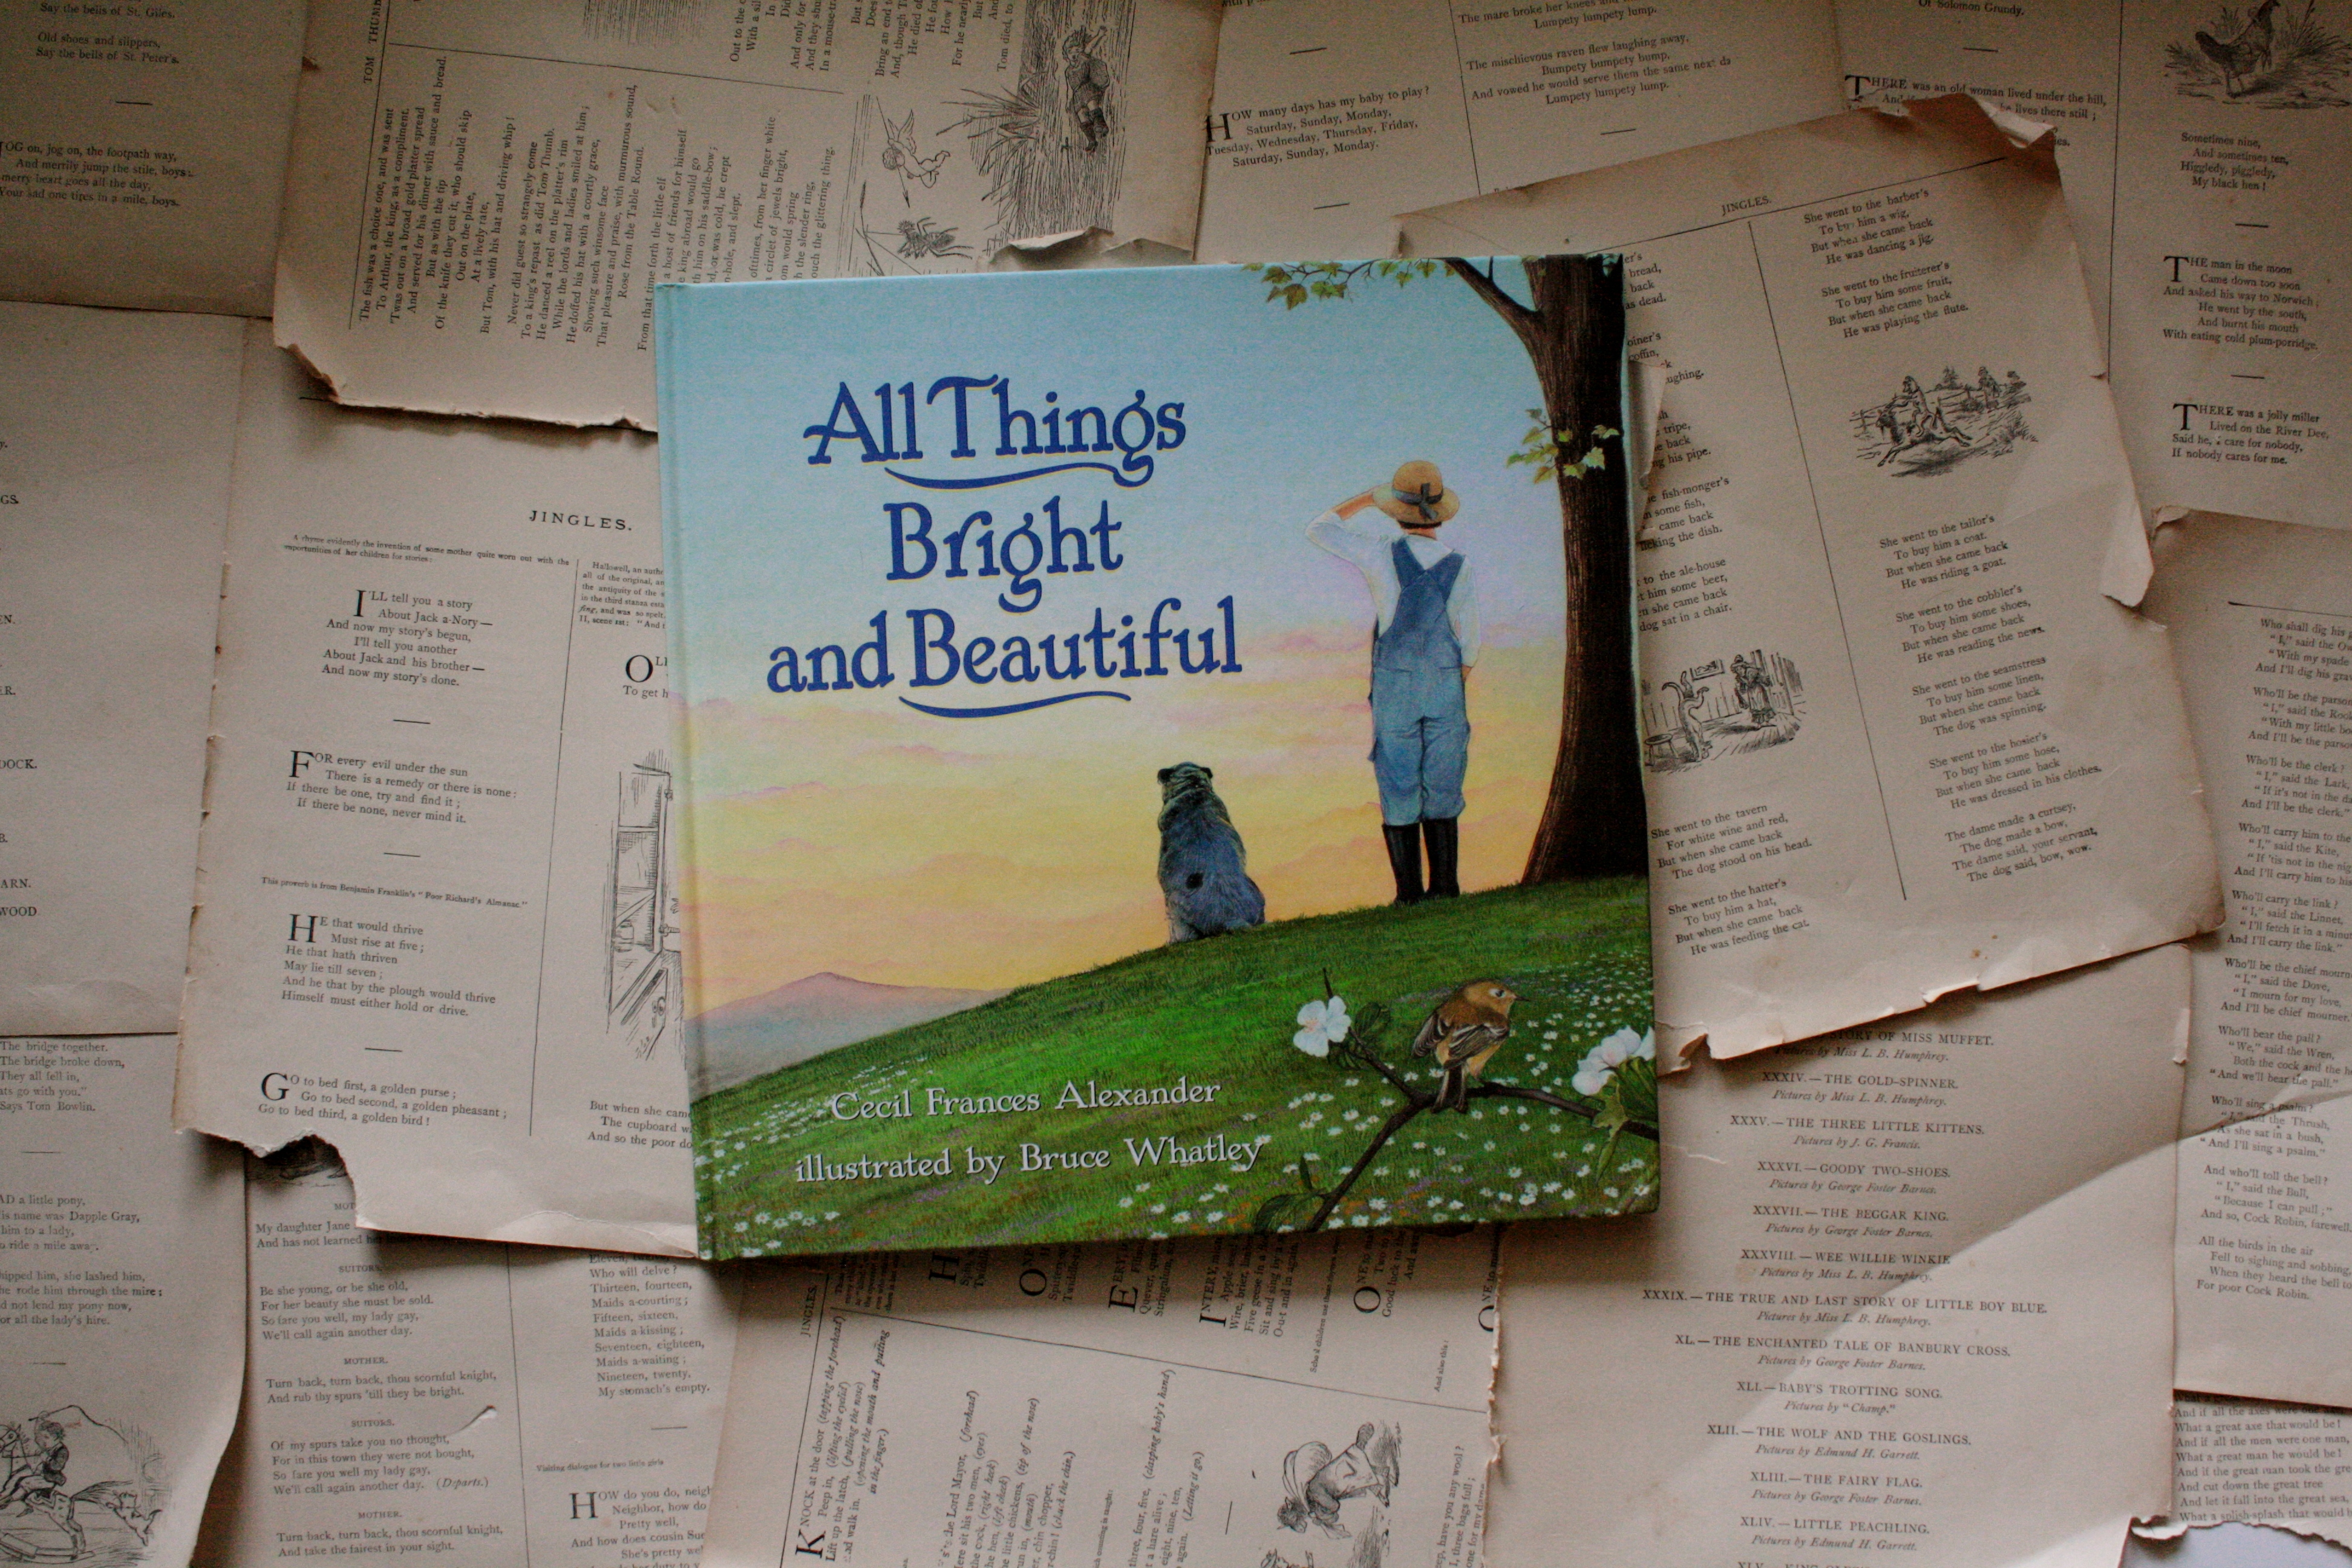 All Things Bright and Beautiful | Bruce Whatley